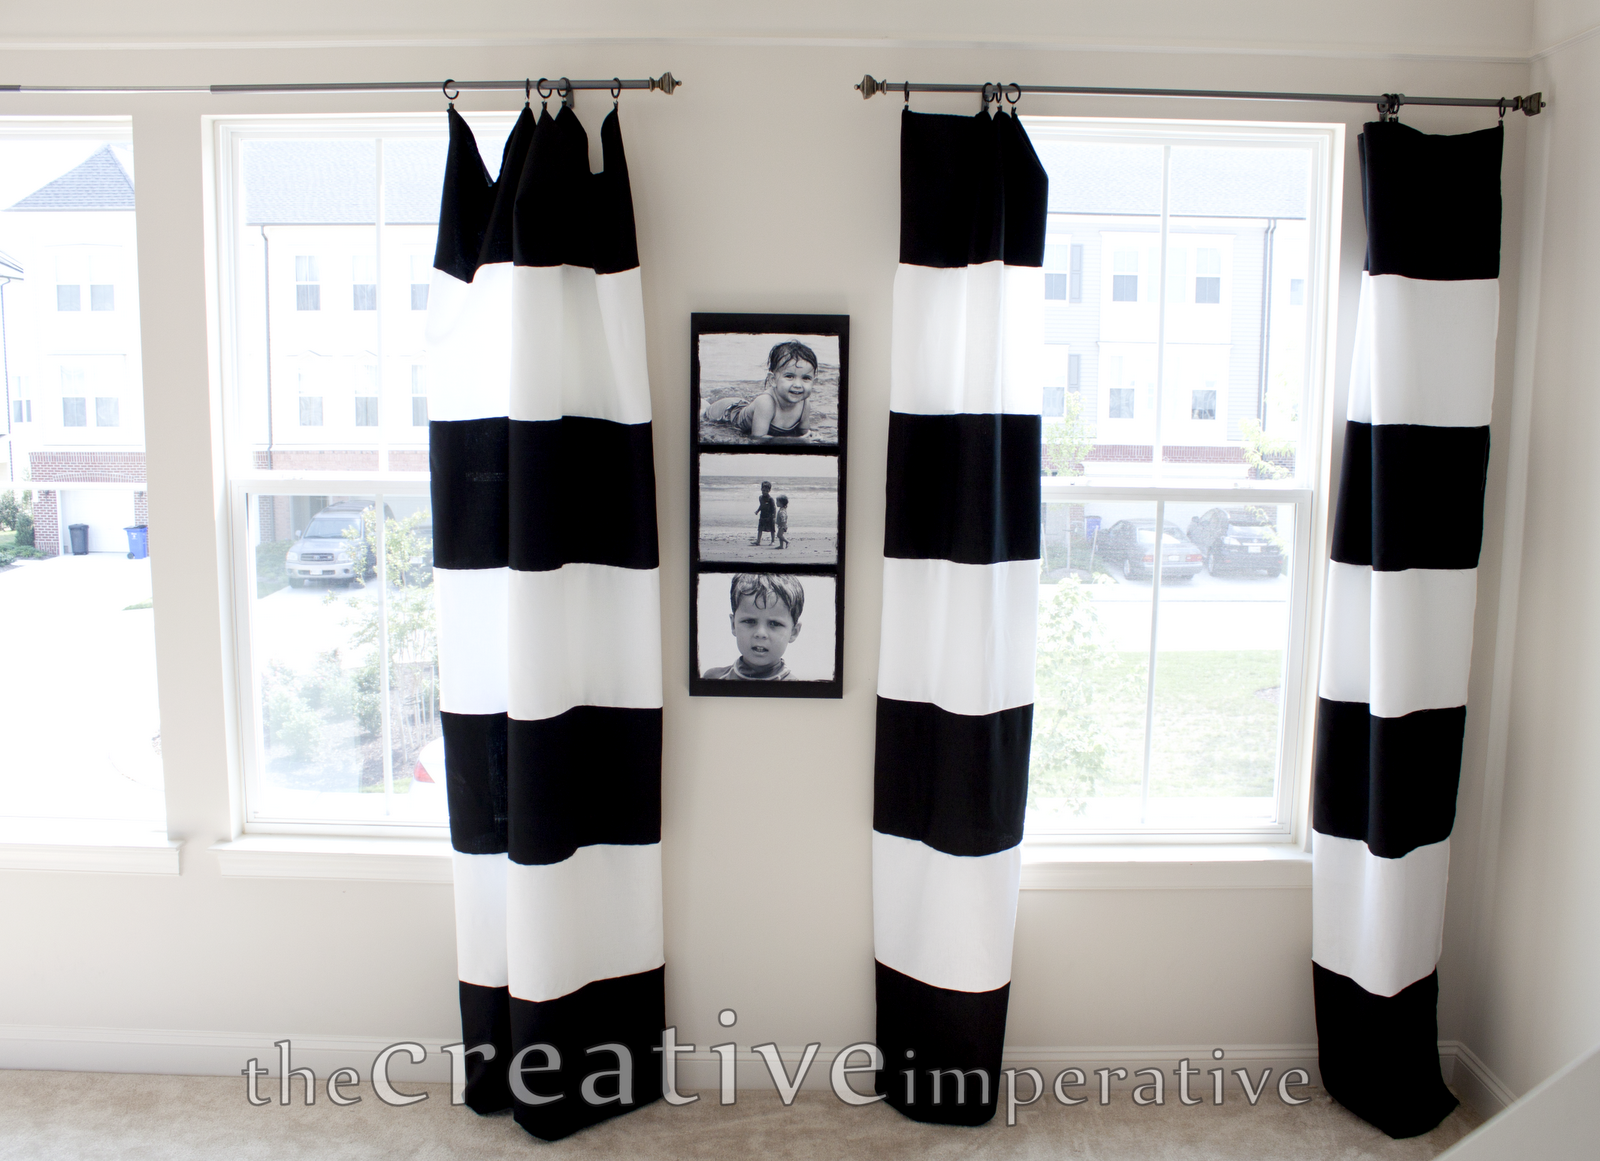 The creative imperative black and white horizontal Black and white striped curtains